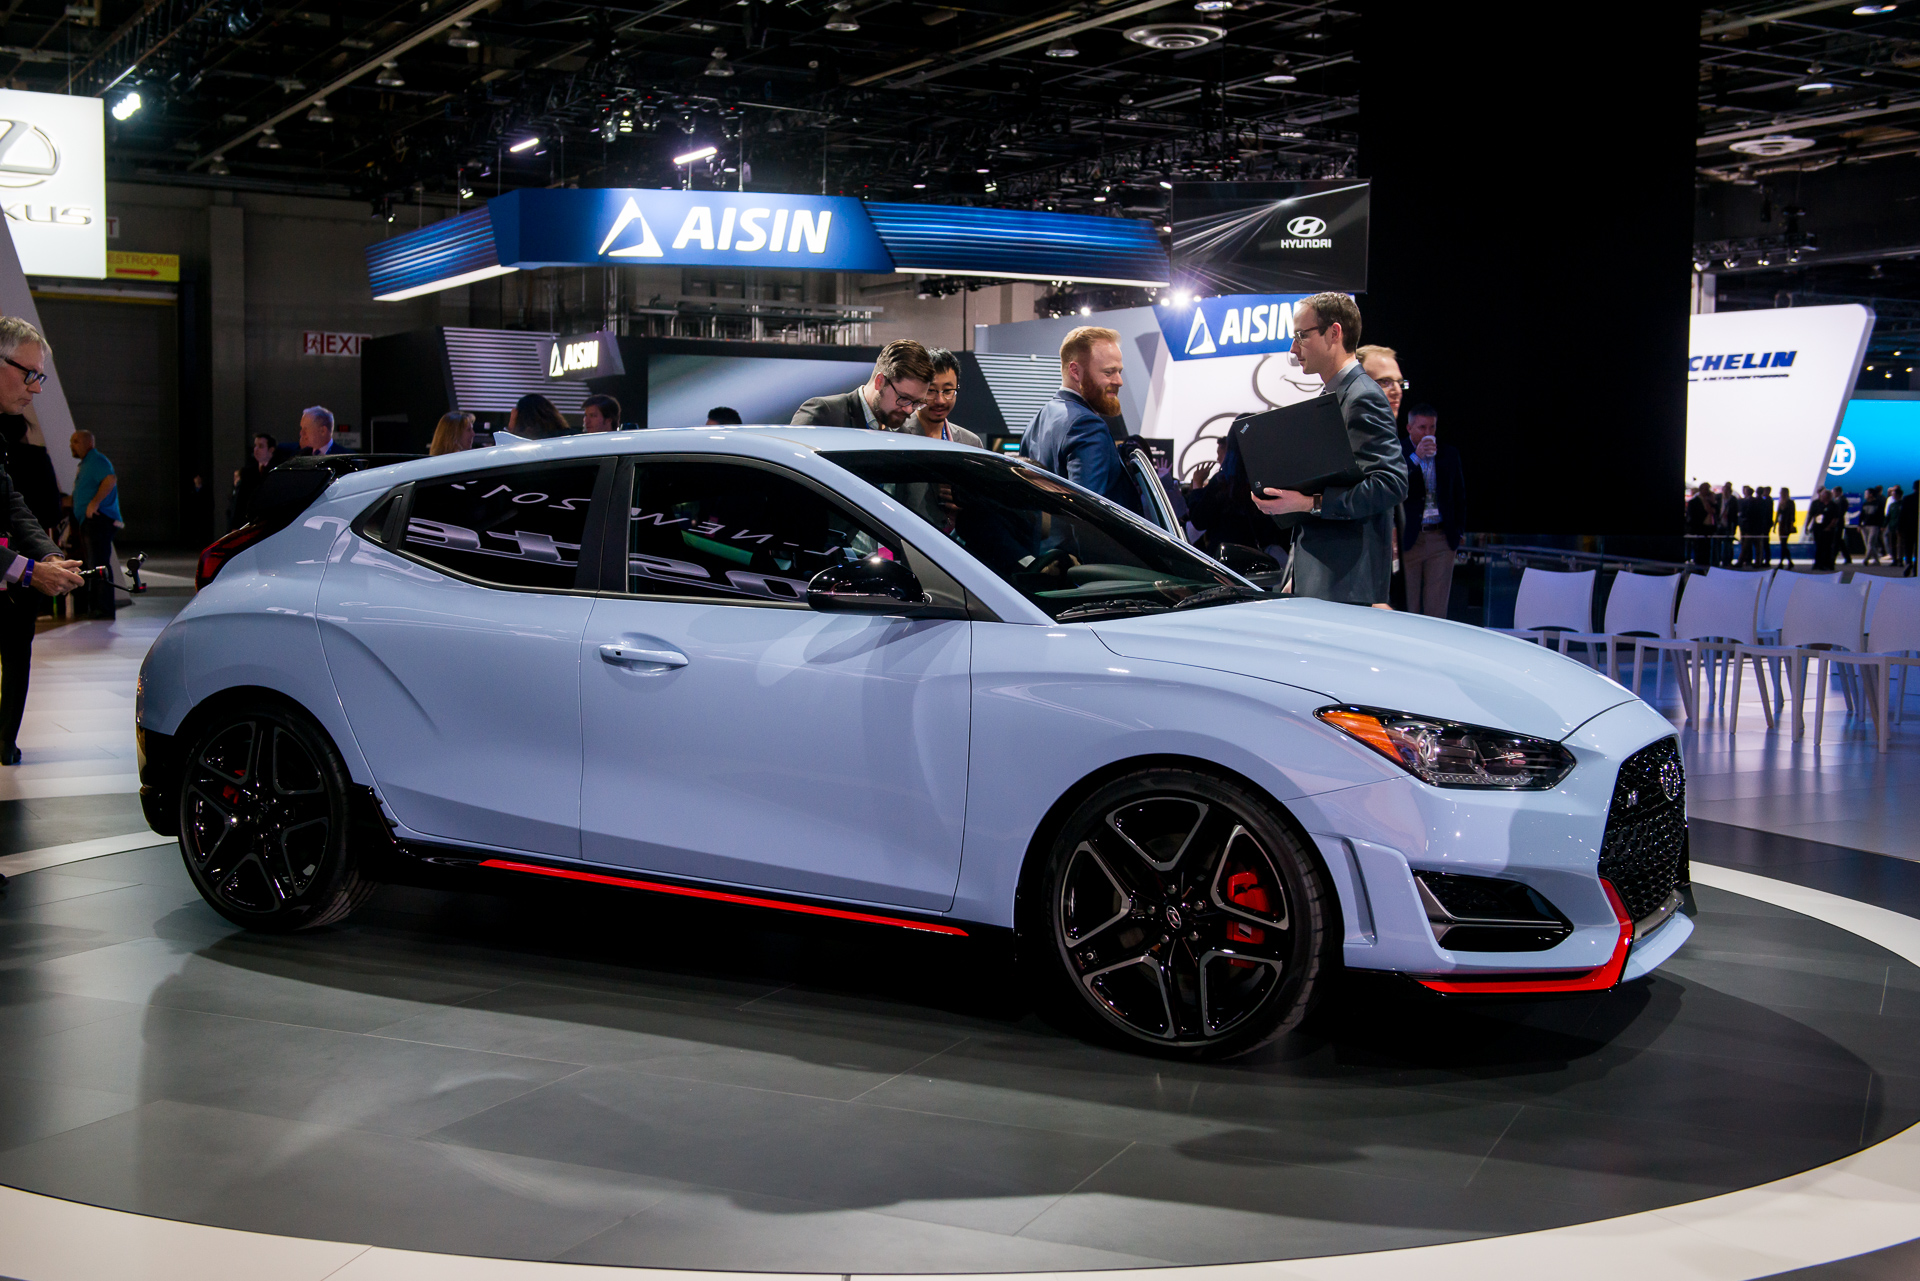 Hyundai Veloster N Video Preview - Hyundai car show